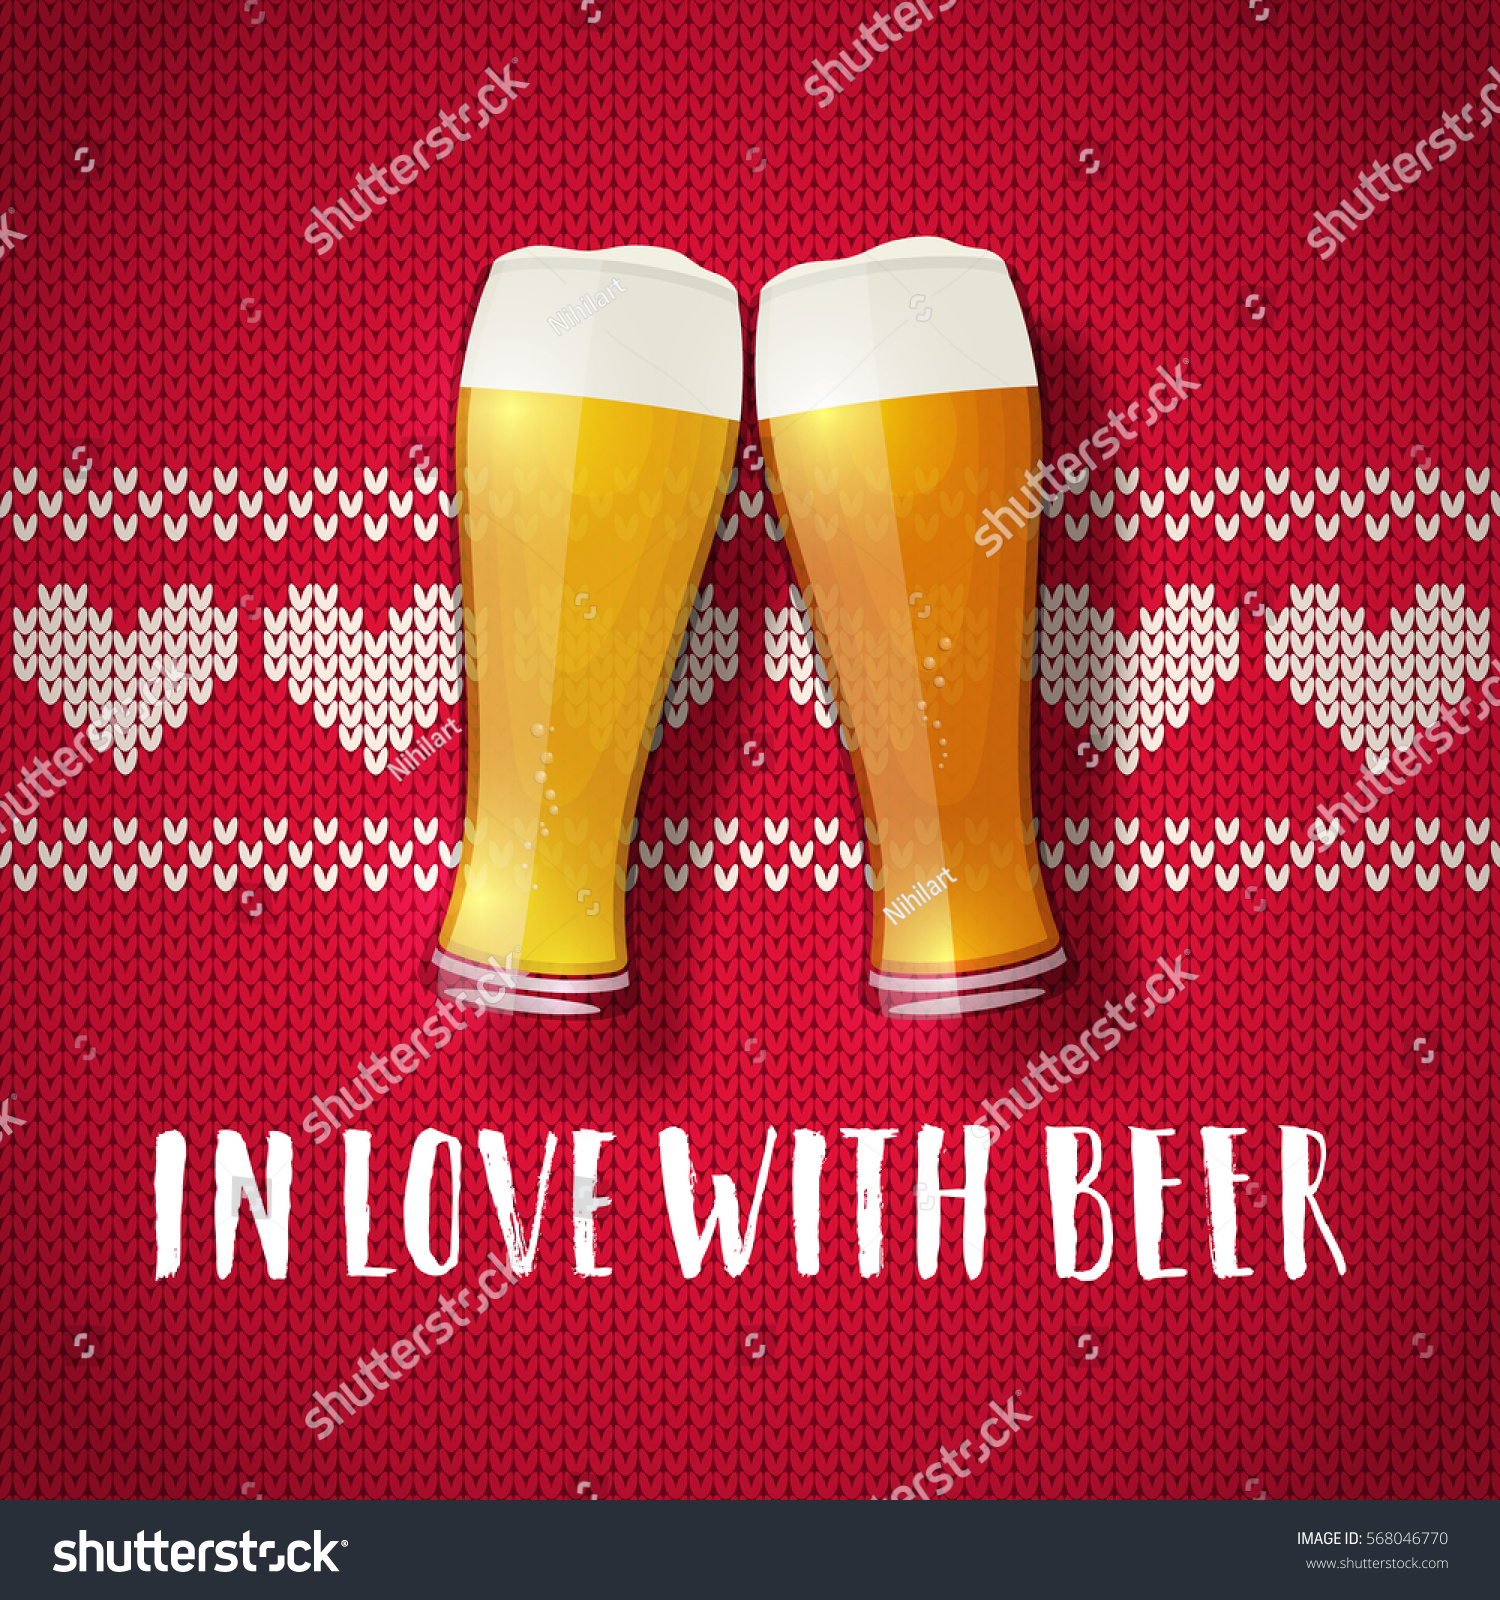 Beer Valentine Poster. Two Glasses On A Sweater Background. Vintage Hearts  Knit Pattern.